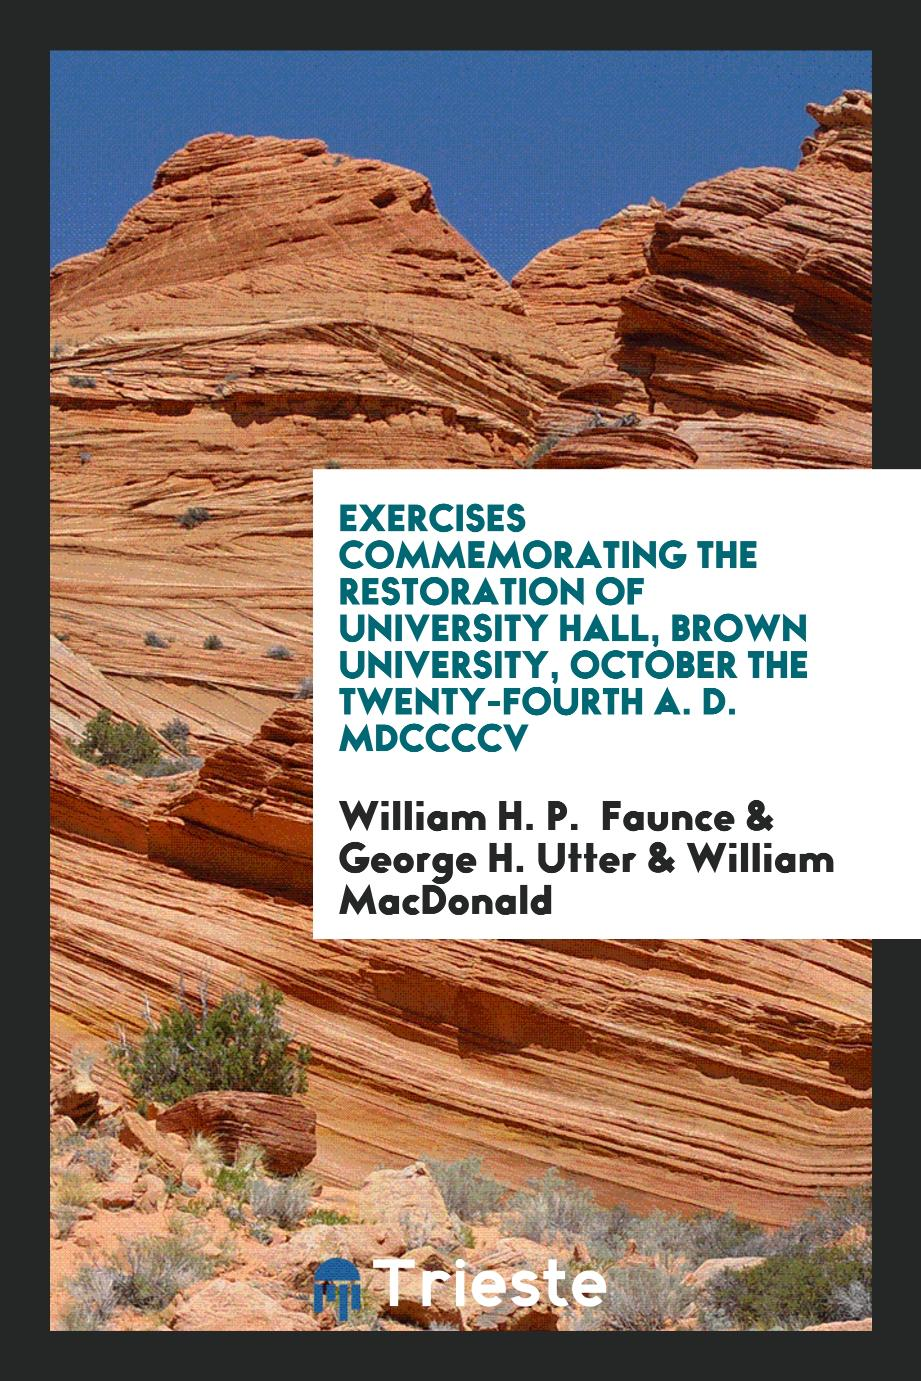 Exercises Commemorating the Restoration of University Hall, Brown University, October the twenty-fourth A. D. MDCCCCV